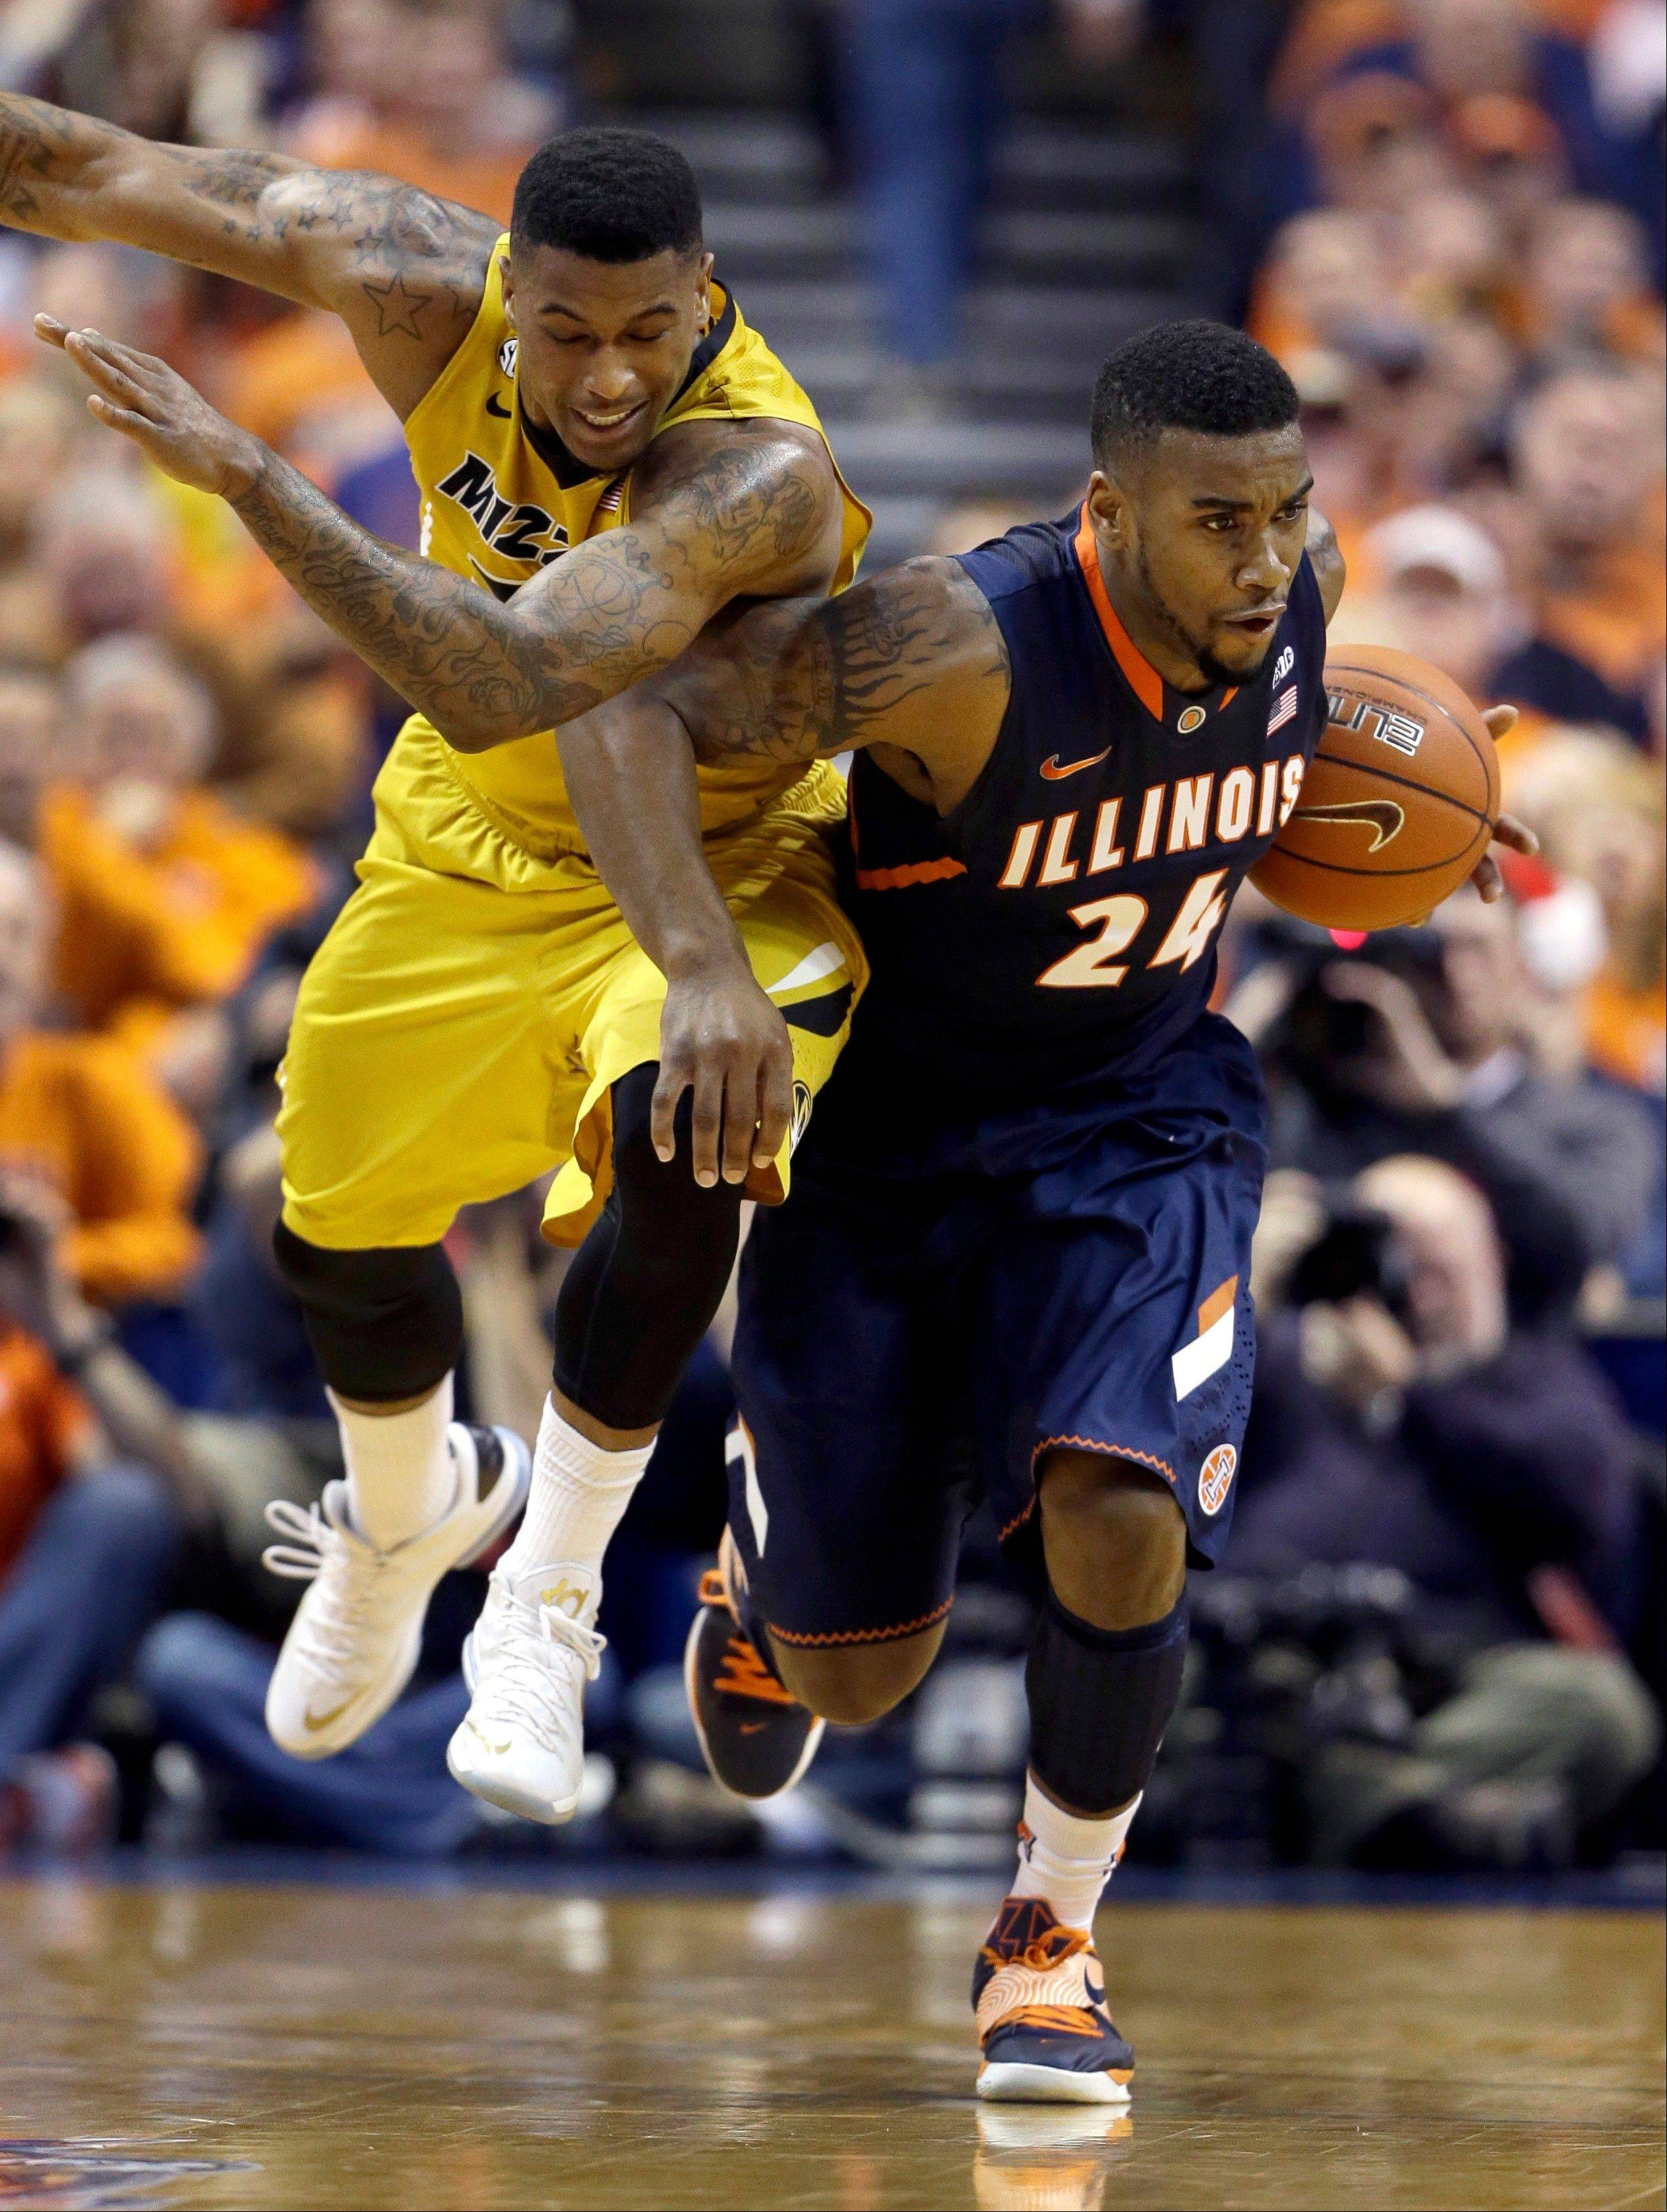 Illinois edges No. 23 Missouri for Braggin' Rights